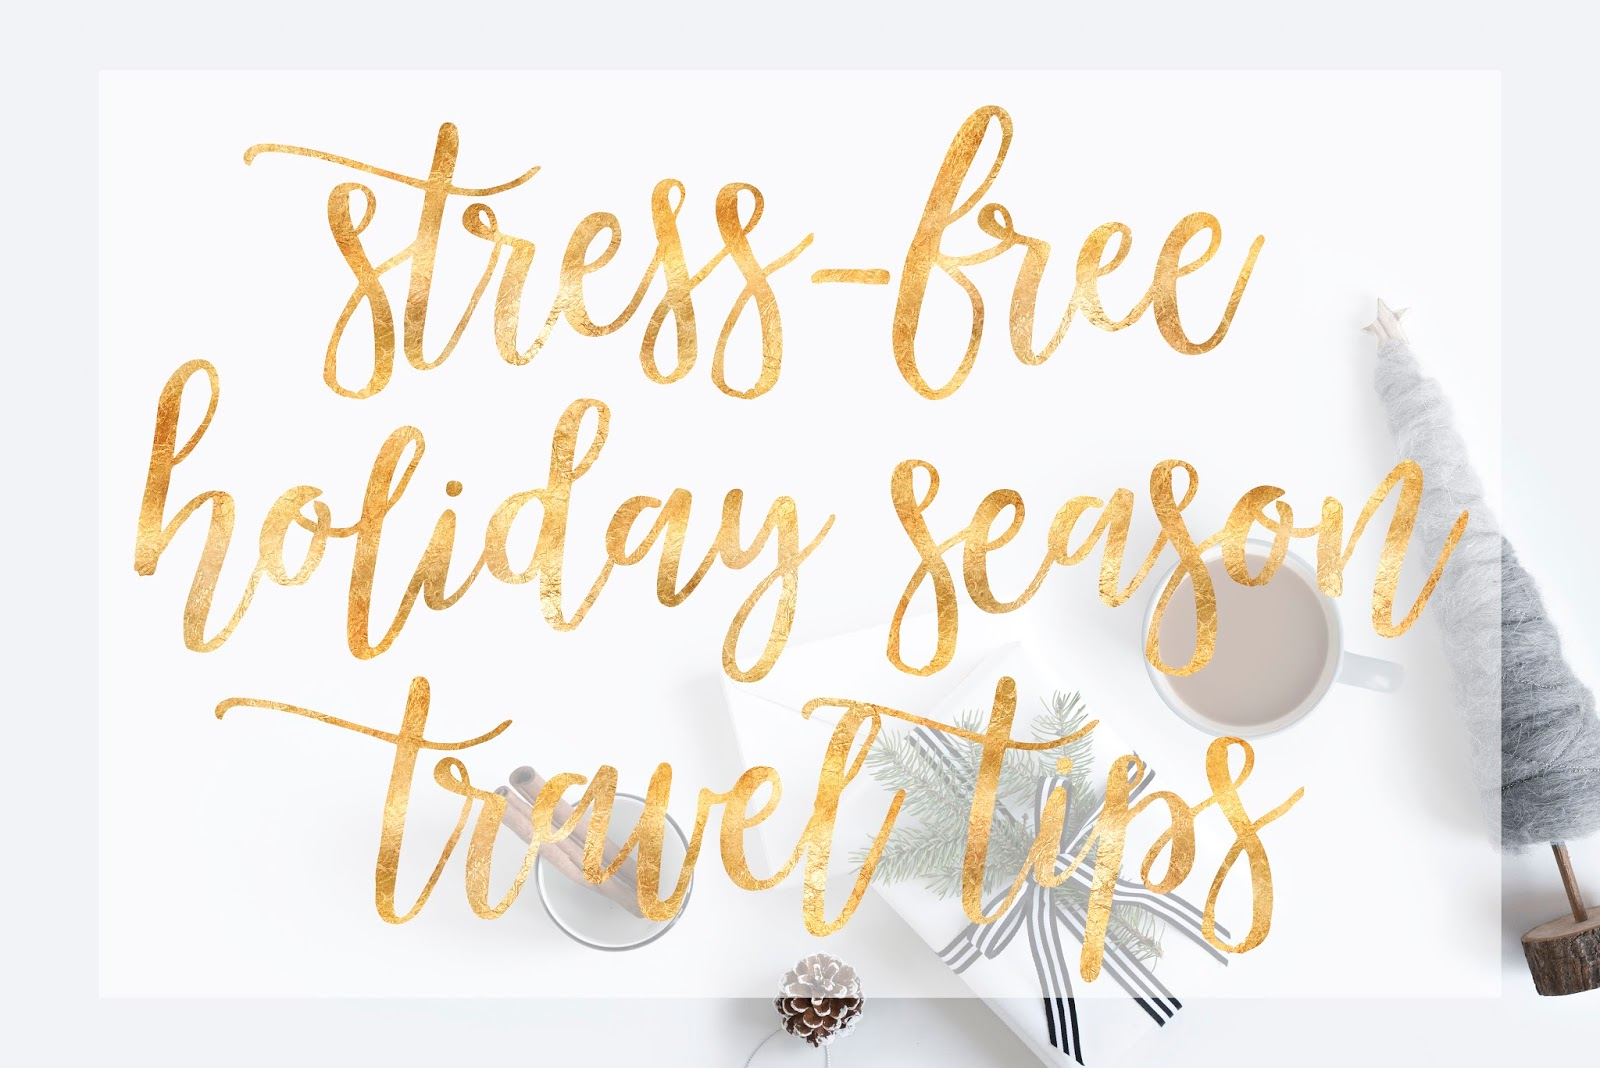 Stress-Free Holiday Season Travel Tips